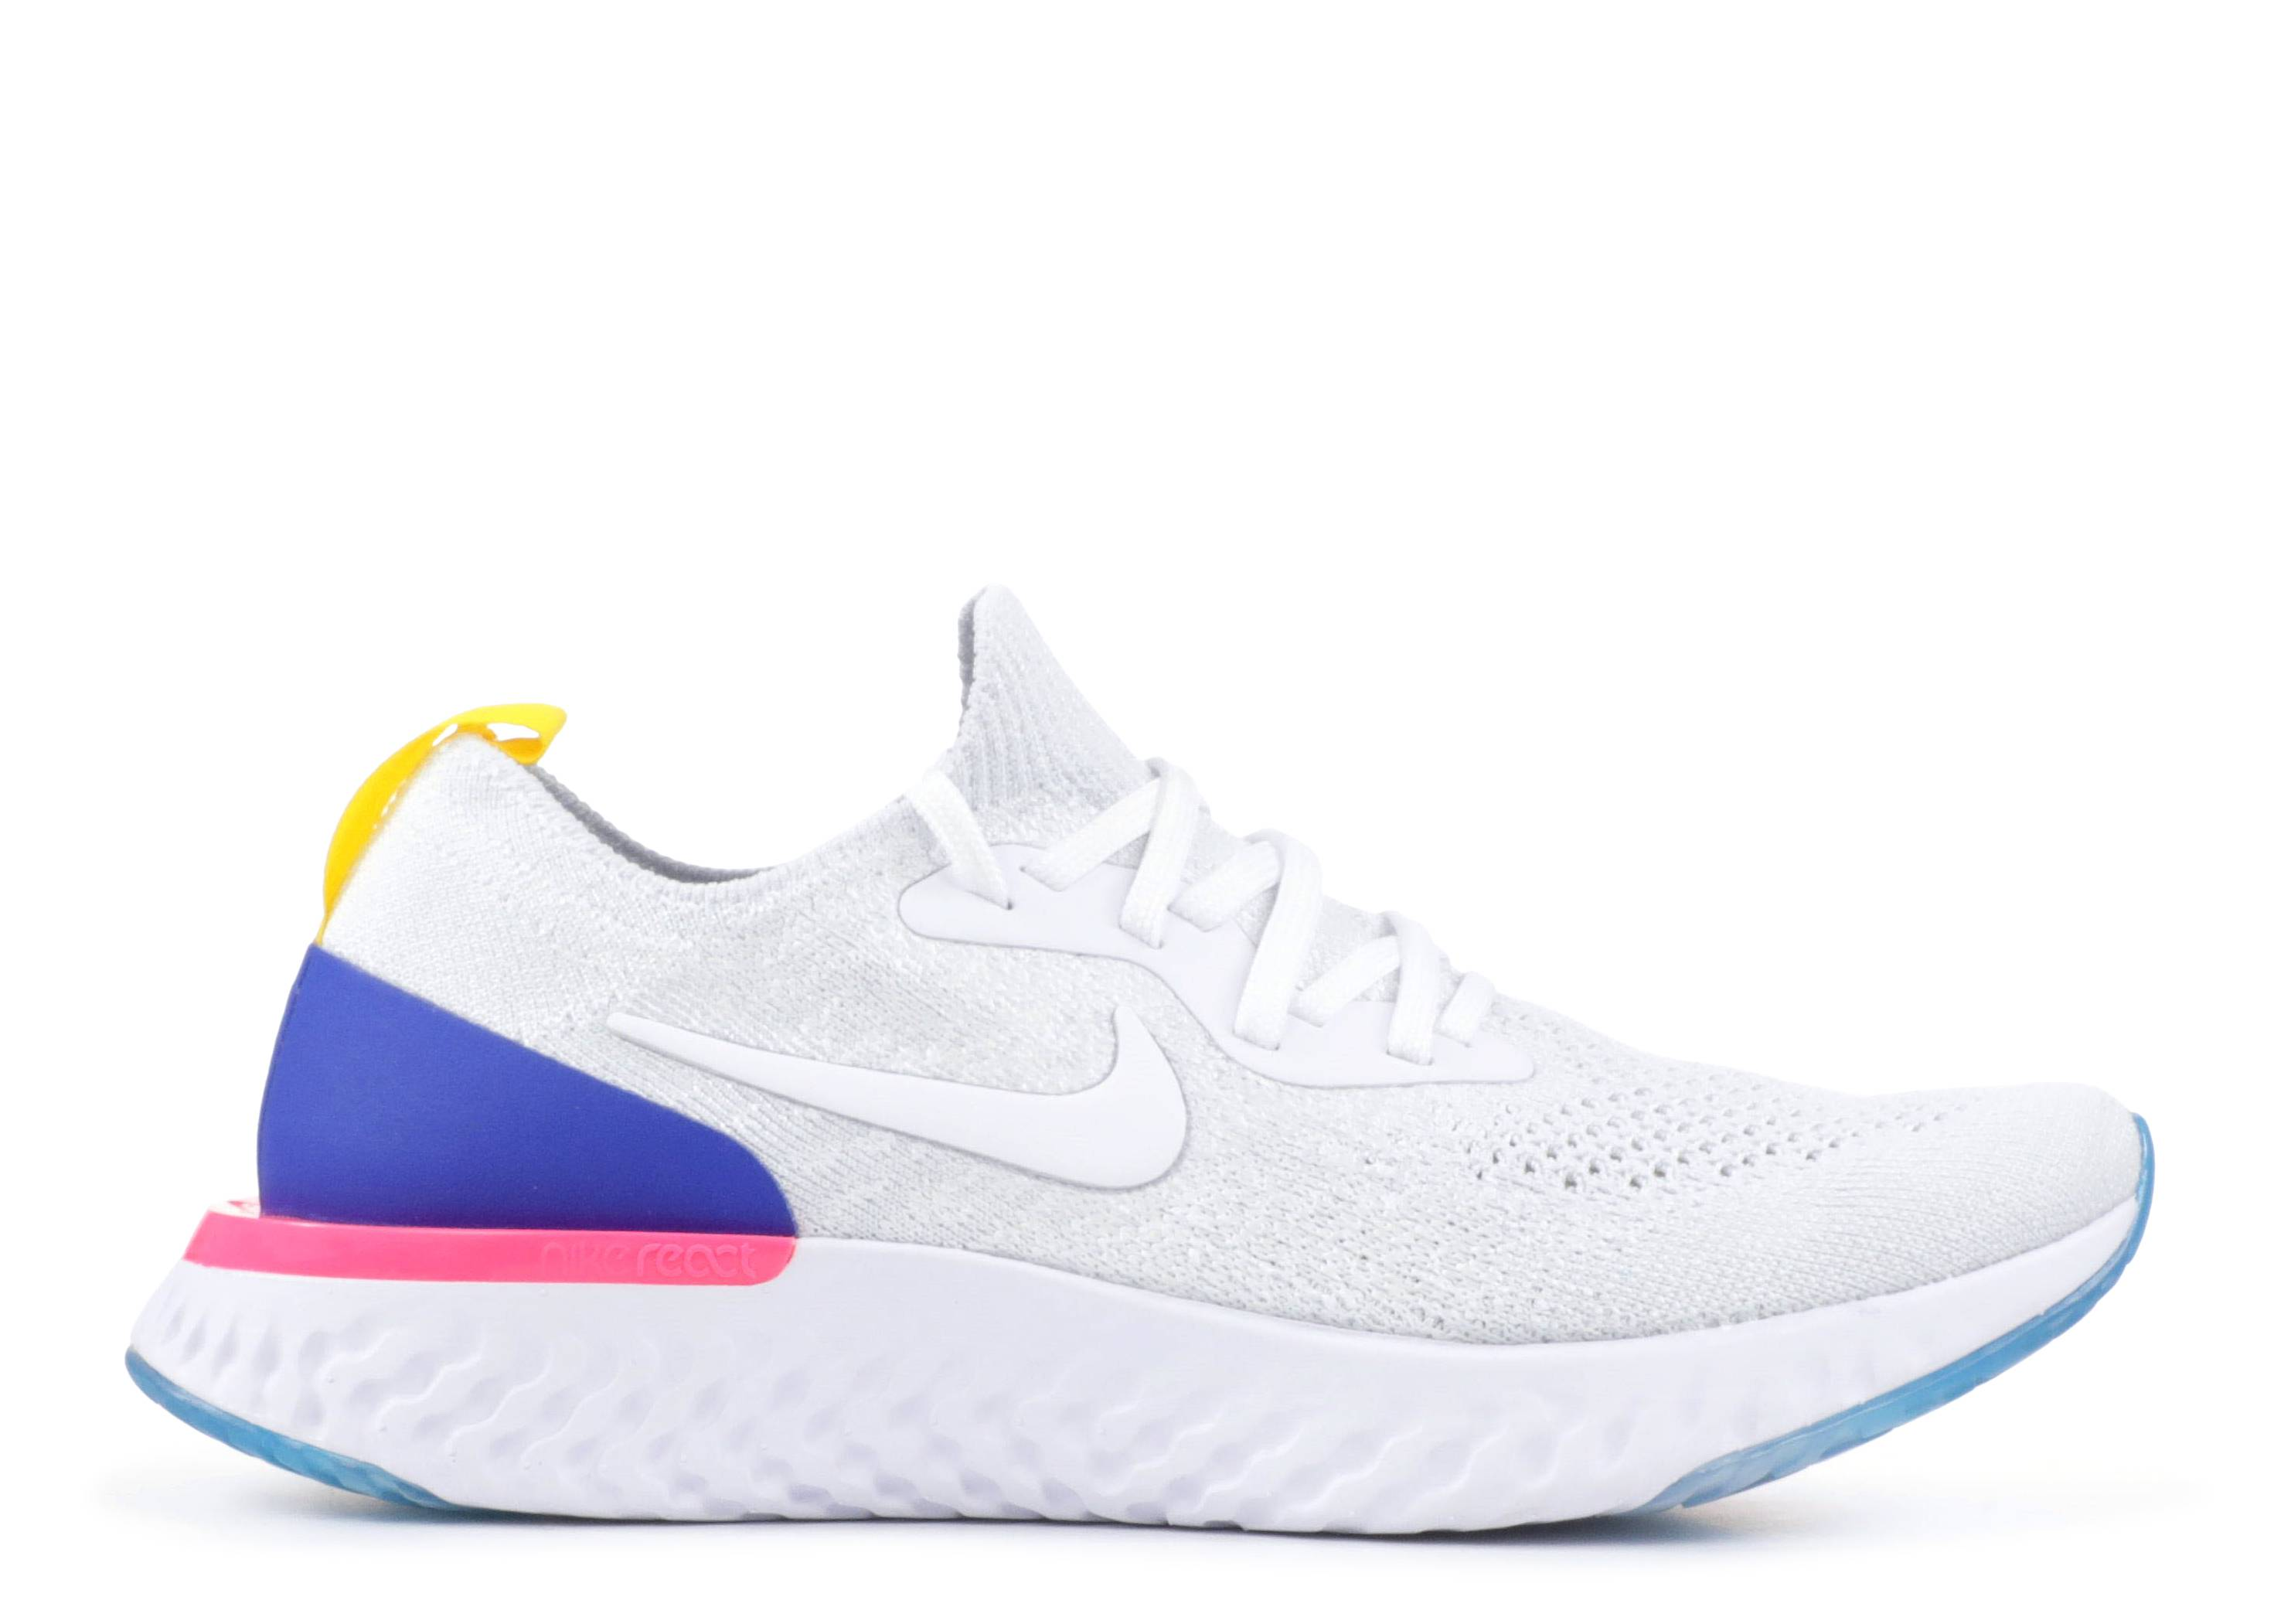 Nike Epic React Flyknit GS Running Trainers 943311 Sneakers Shoes